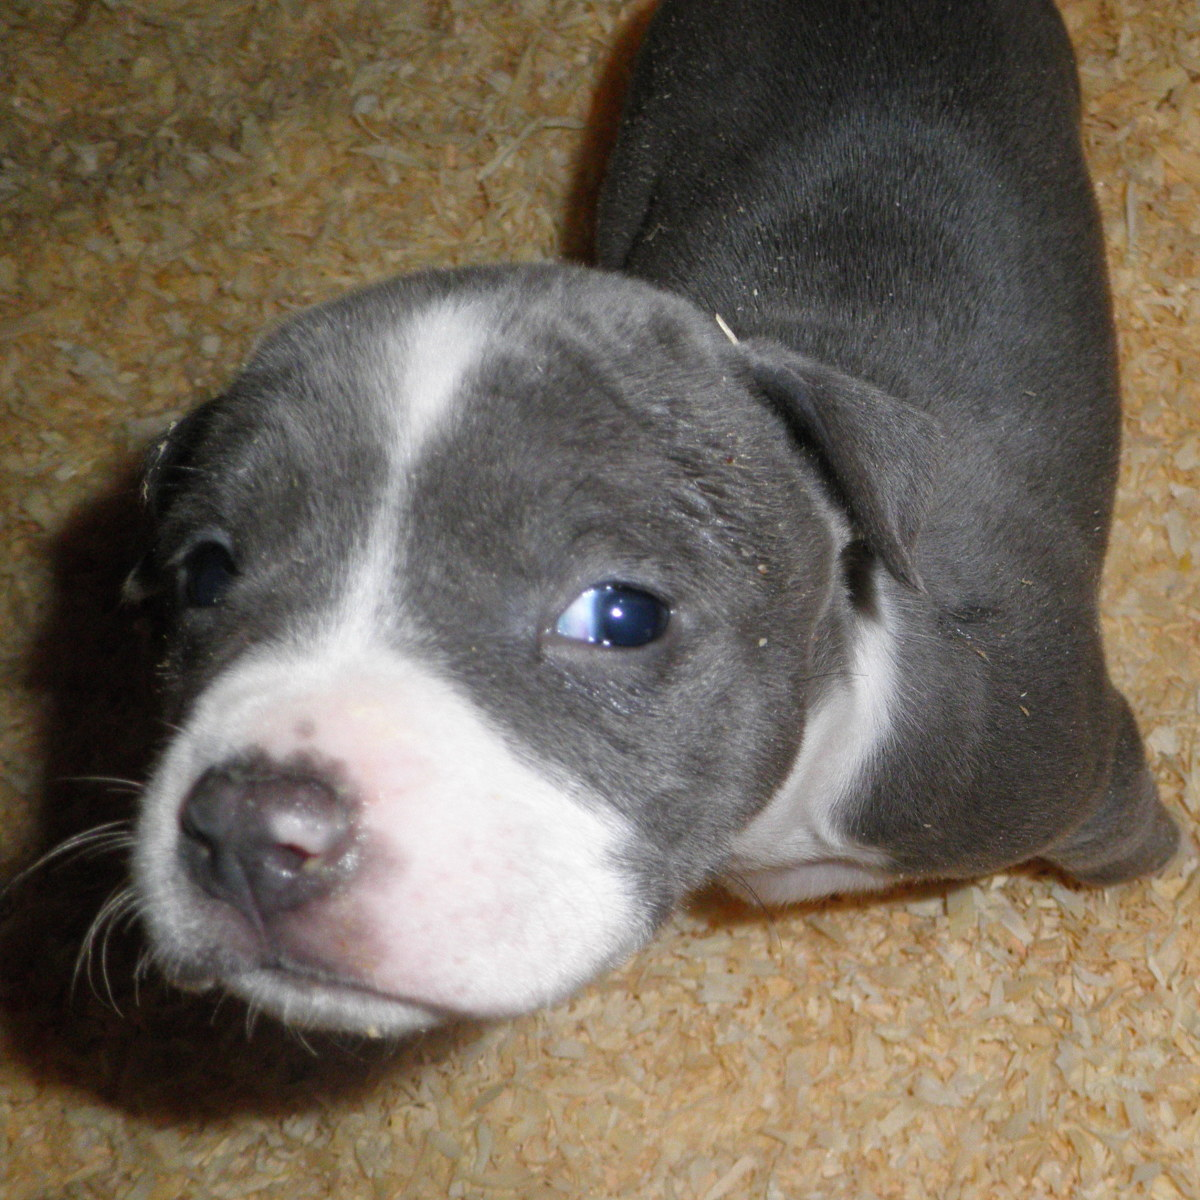 An American Blue-Nose Staffordshire Terrier puppy aka a pit bull dog